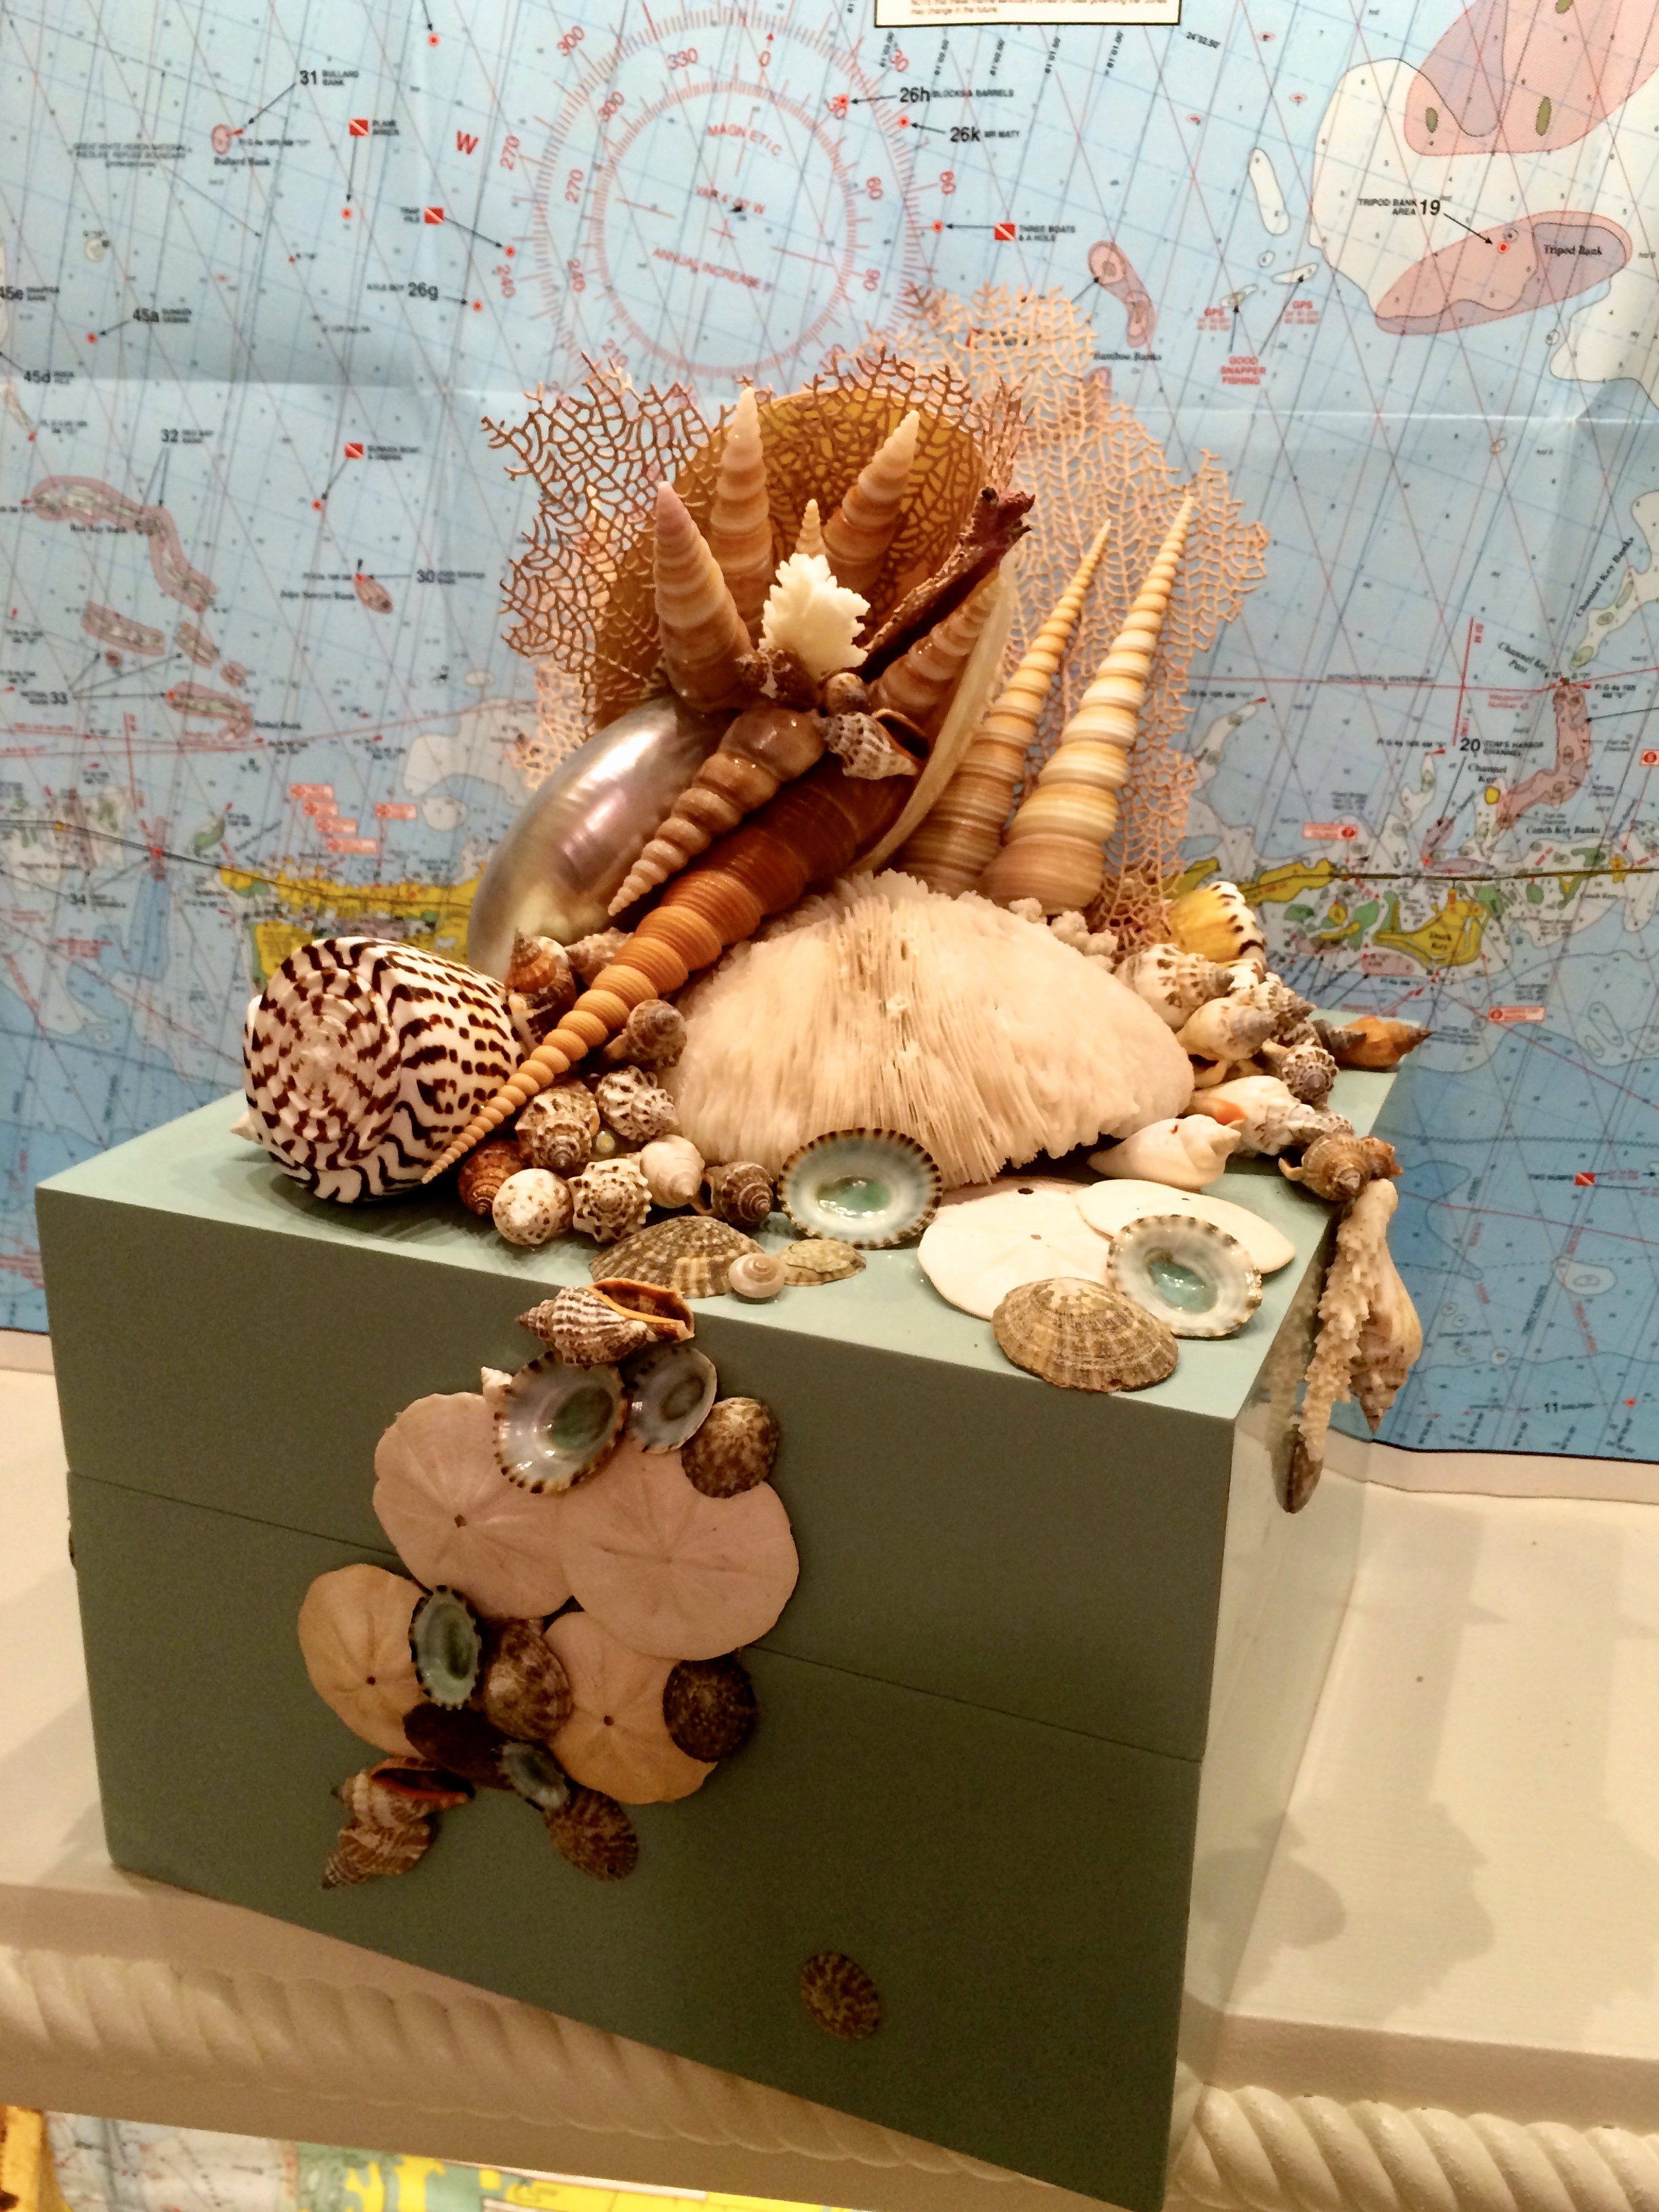 A turquoise box artfully encrusted with sea shells and coral.